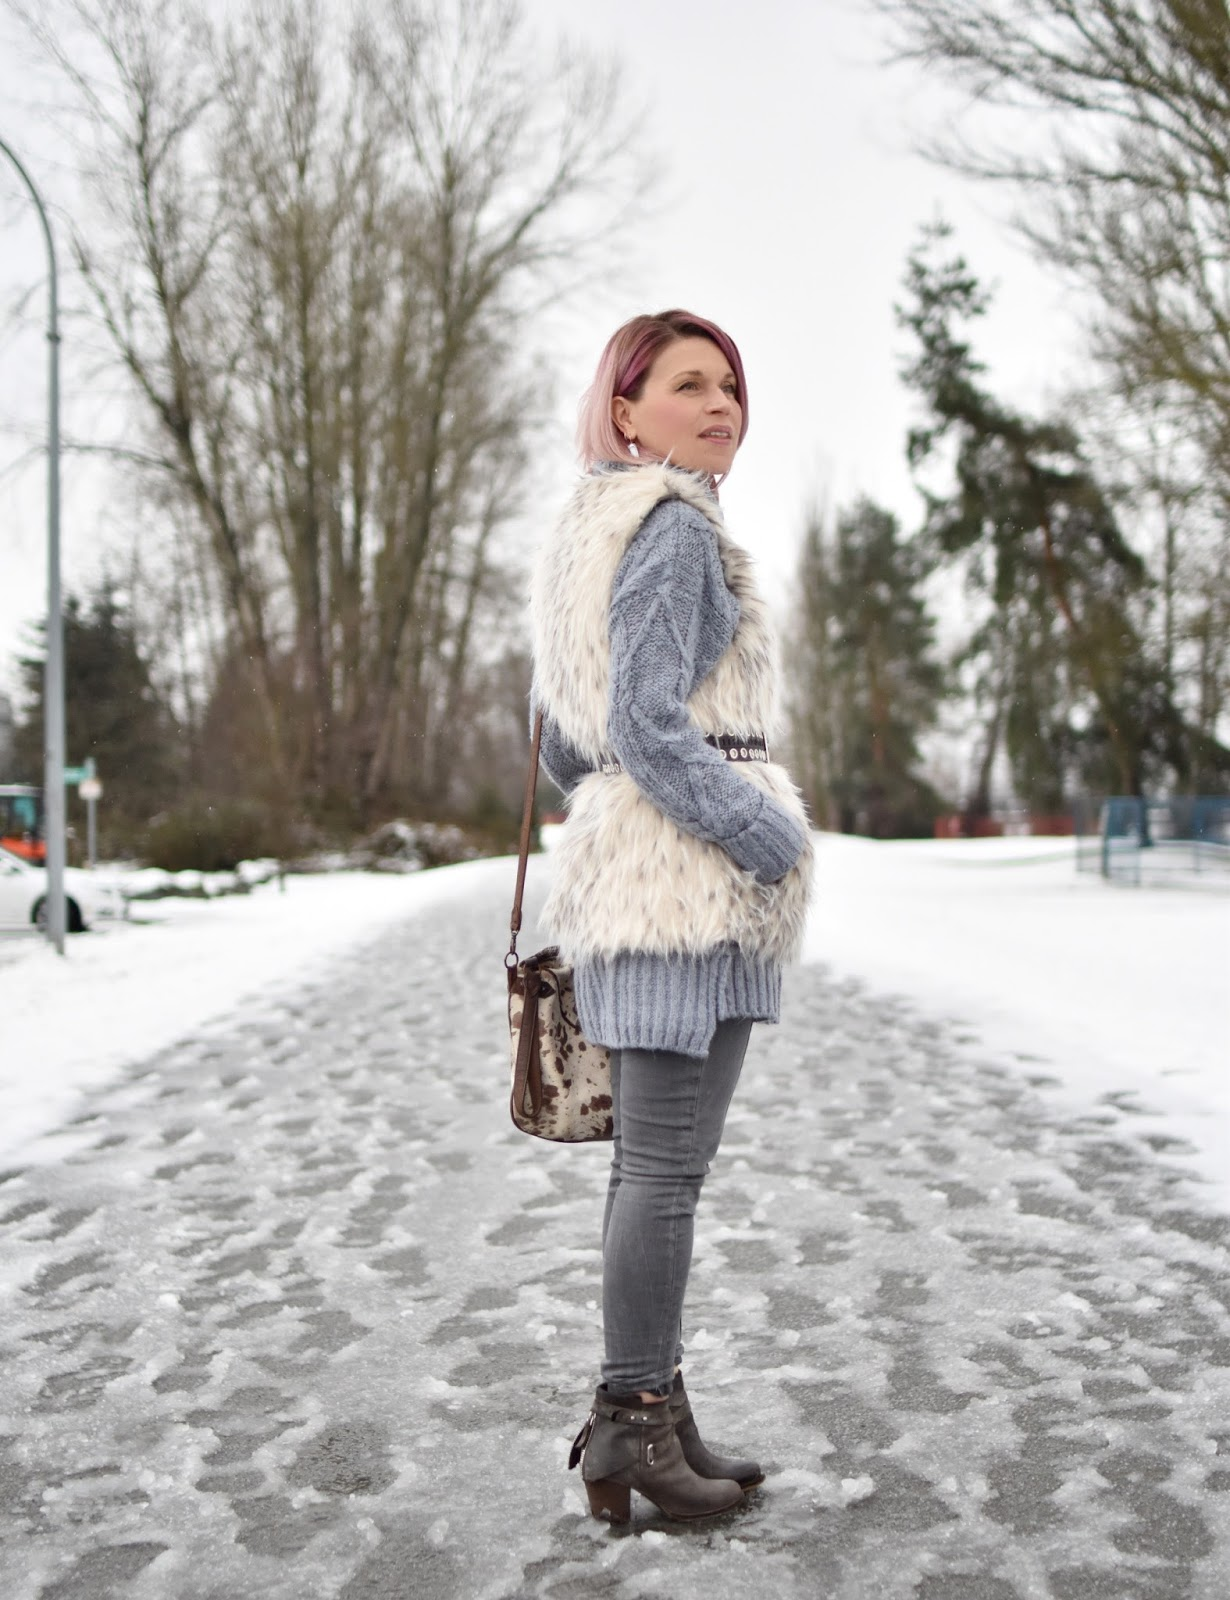 Monika Faulkner outfit inspiration - styling a tunic sweater with a belted faux-fur vest and grey skinny jeans